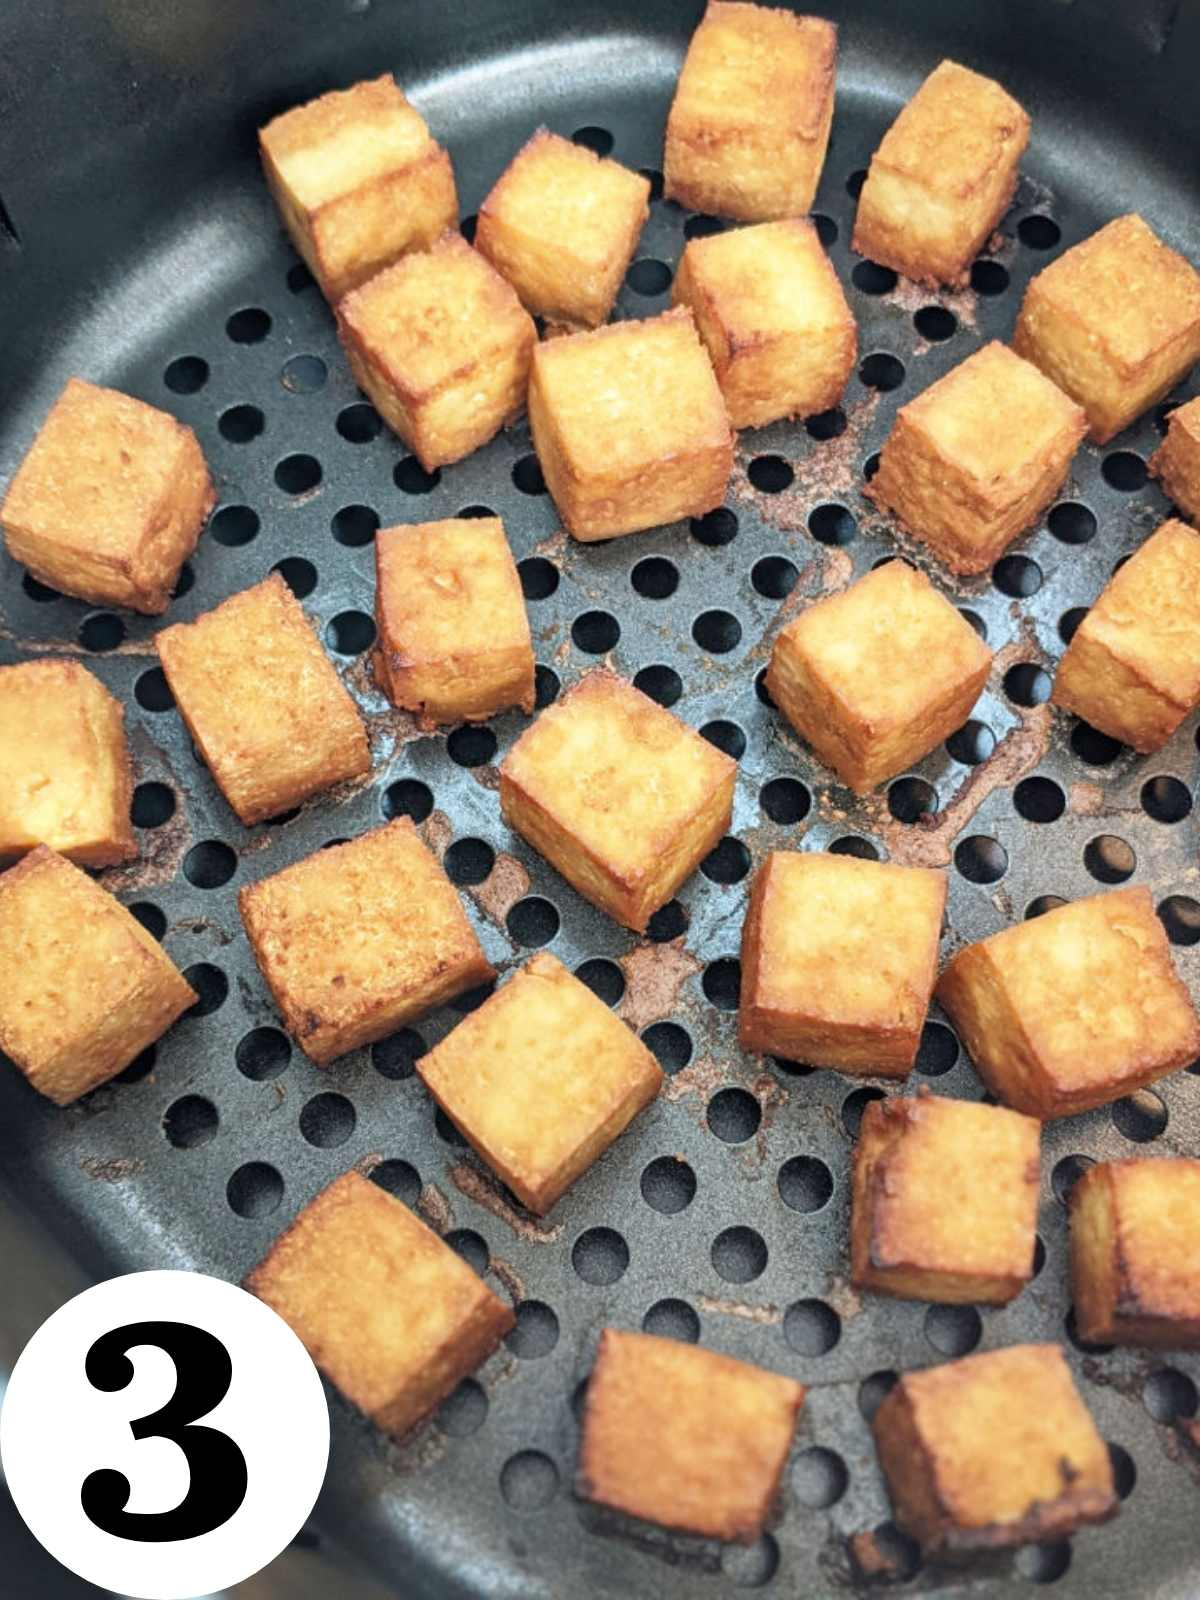 Tofu cooking in an air fryer.